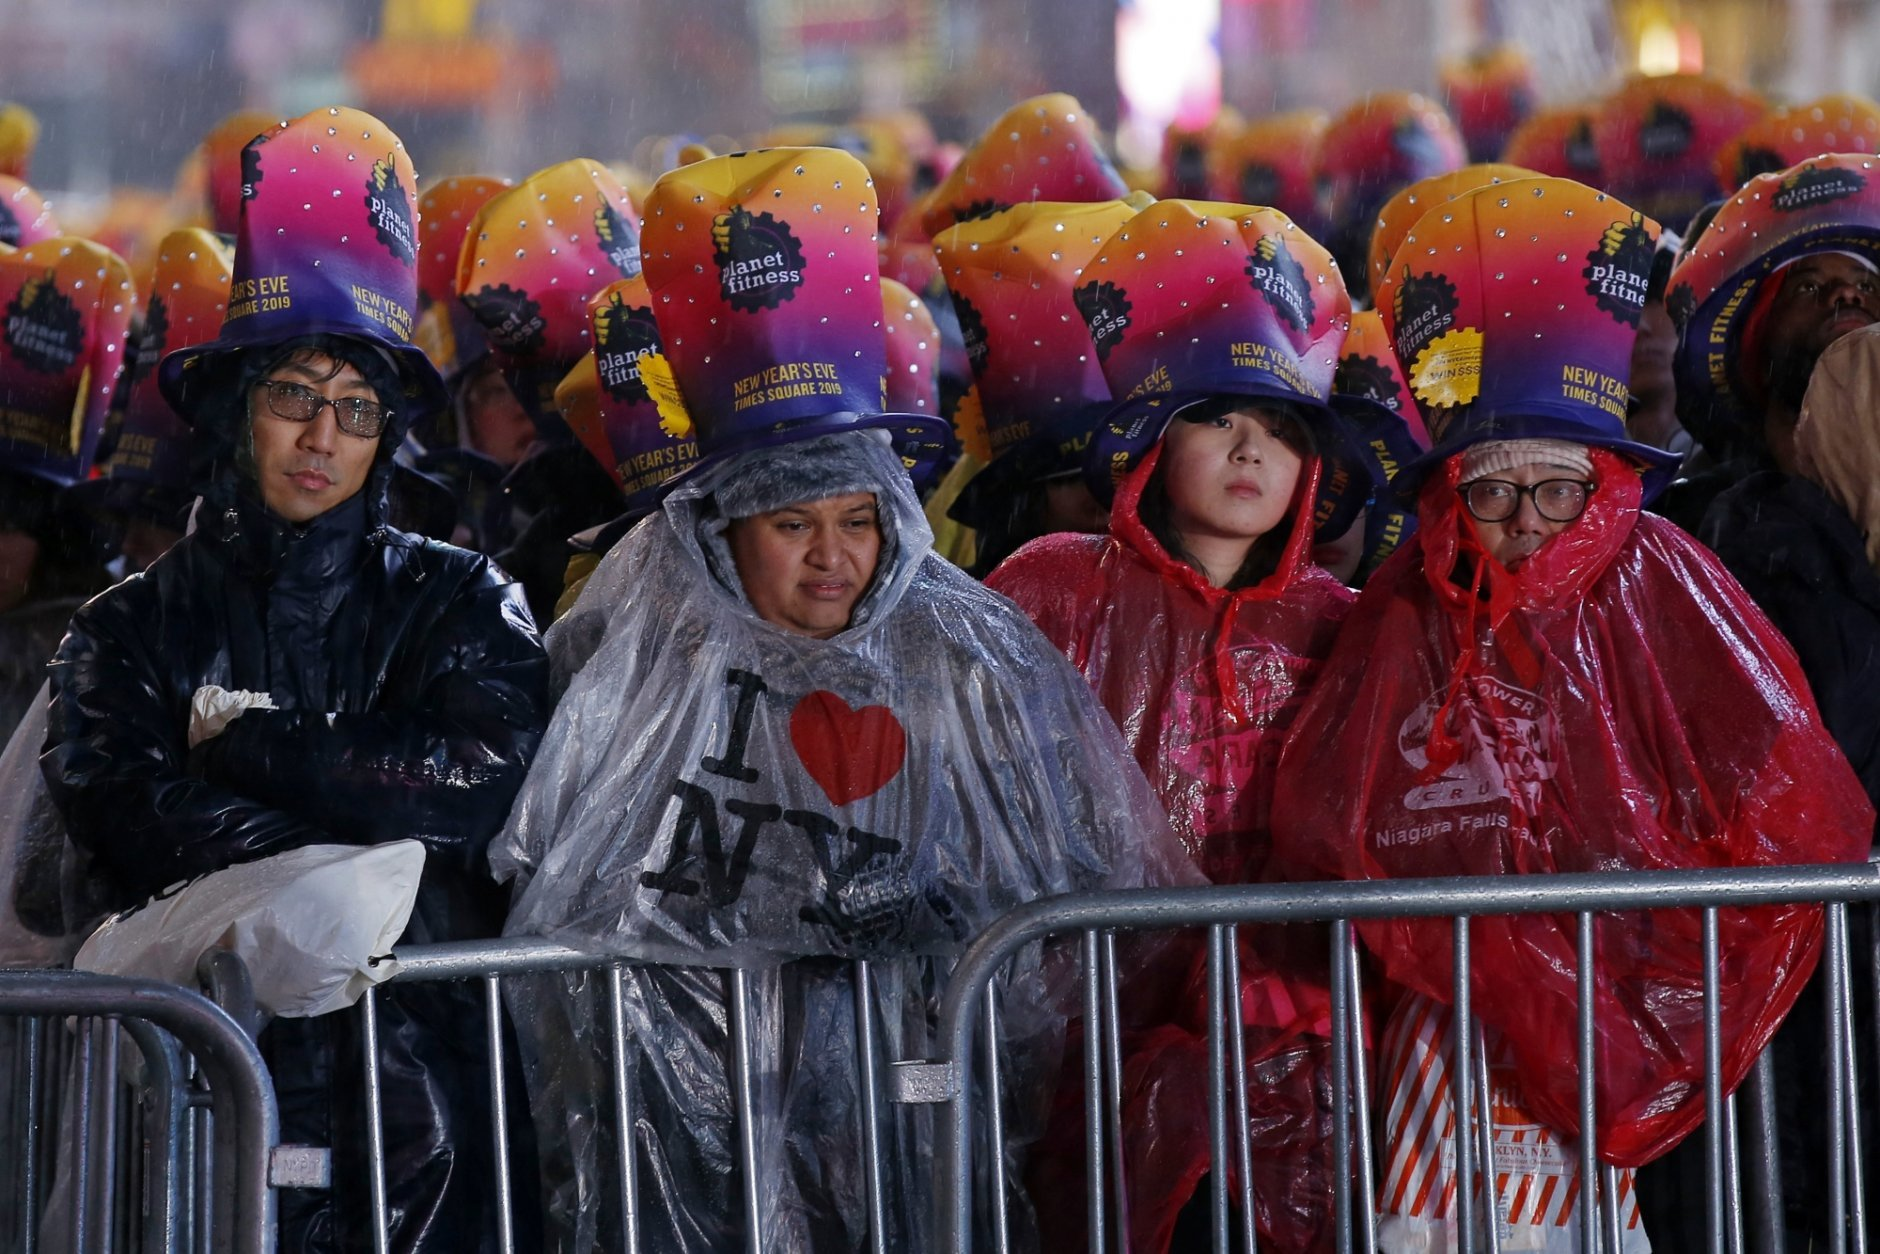 Revelers wait in the rain in New York's Times Square, Monday, Dec. 31, 2018, as they take part in a New Year's Eve celebration. (AP Photo/Adam Hunger)